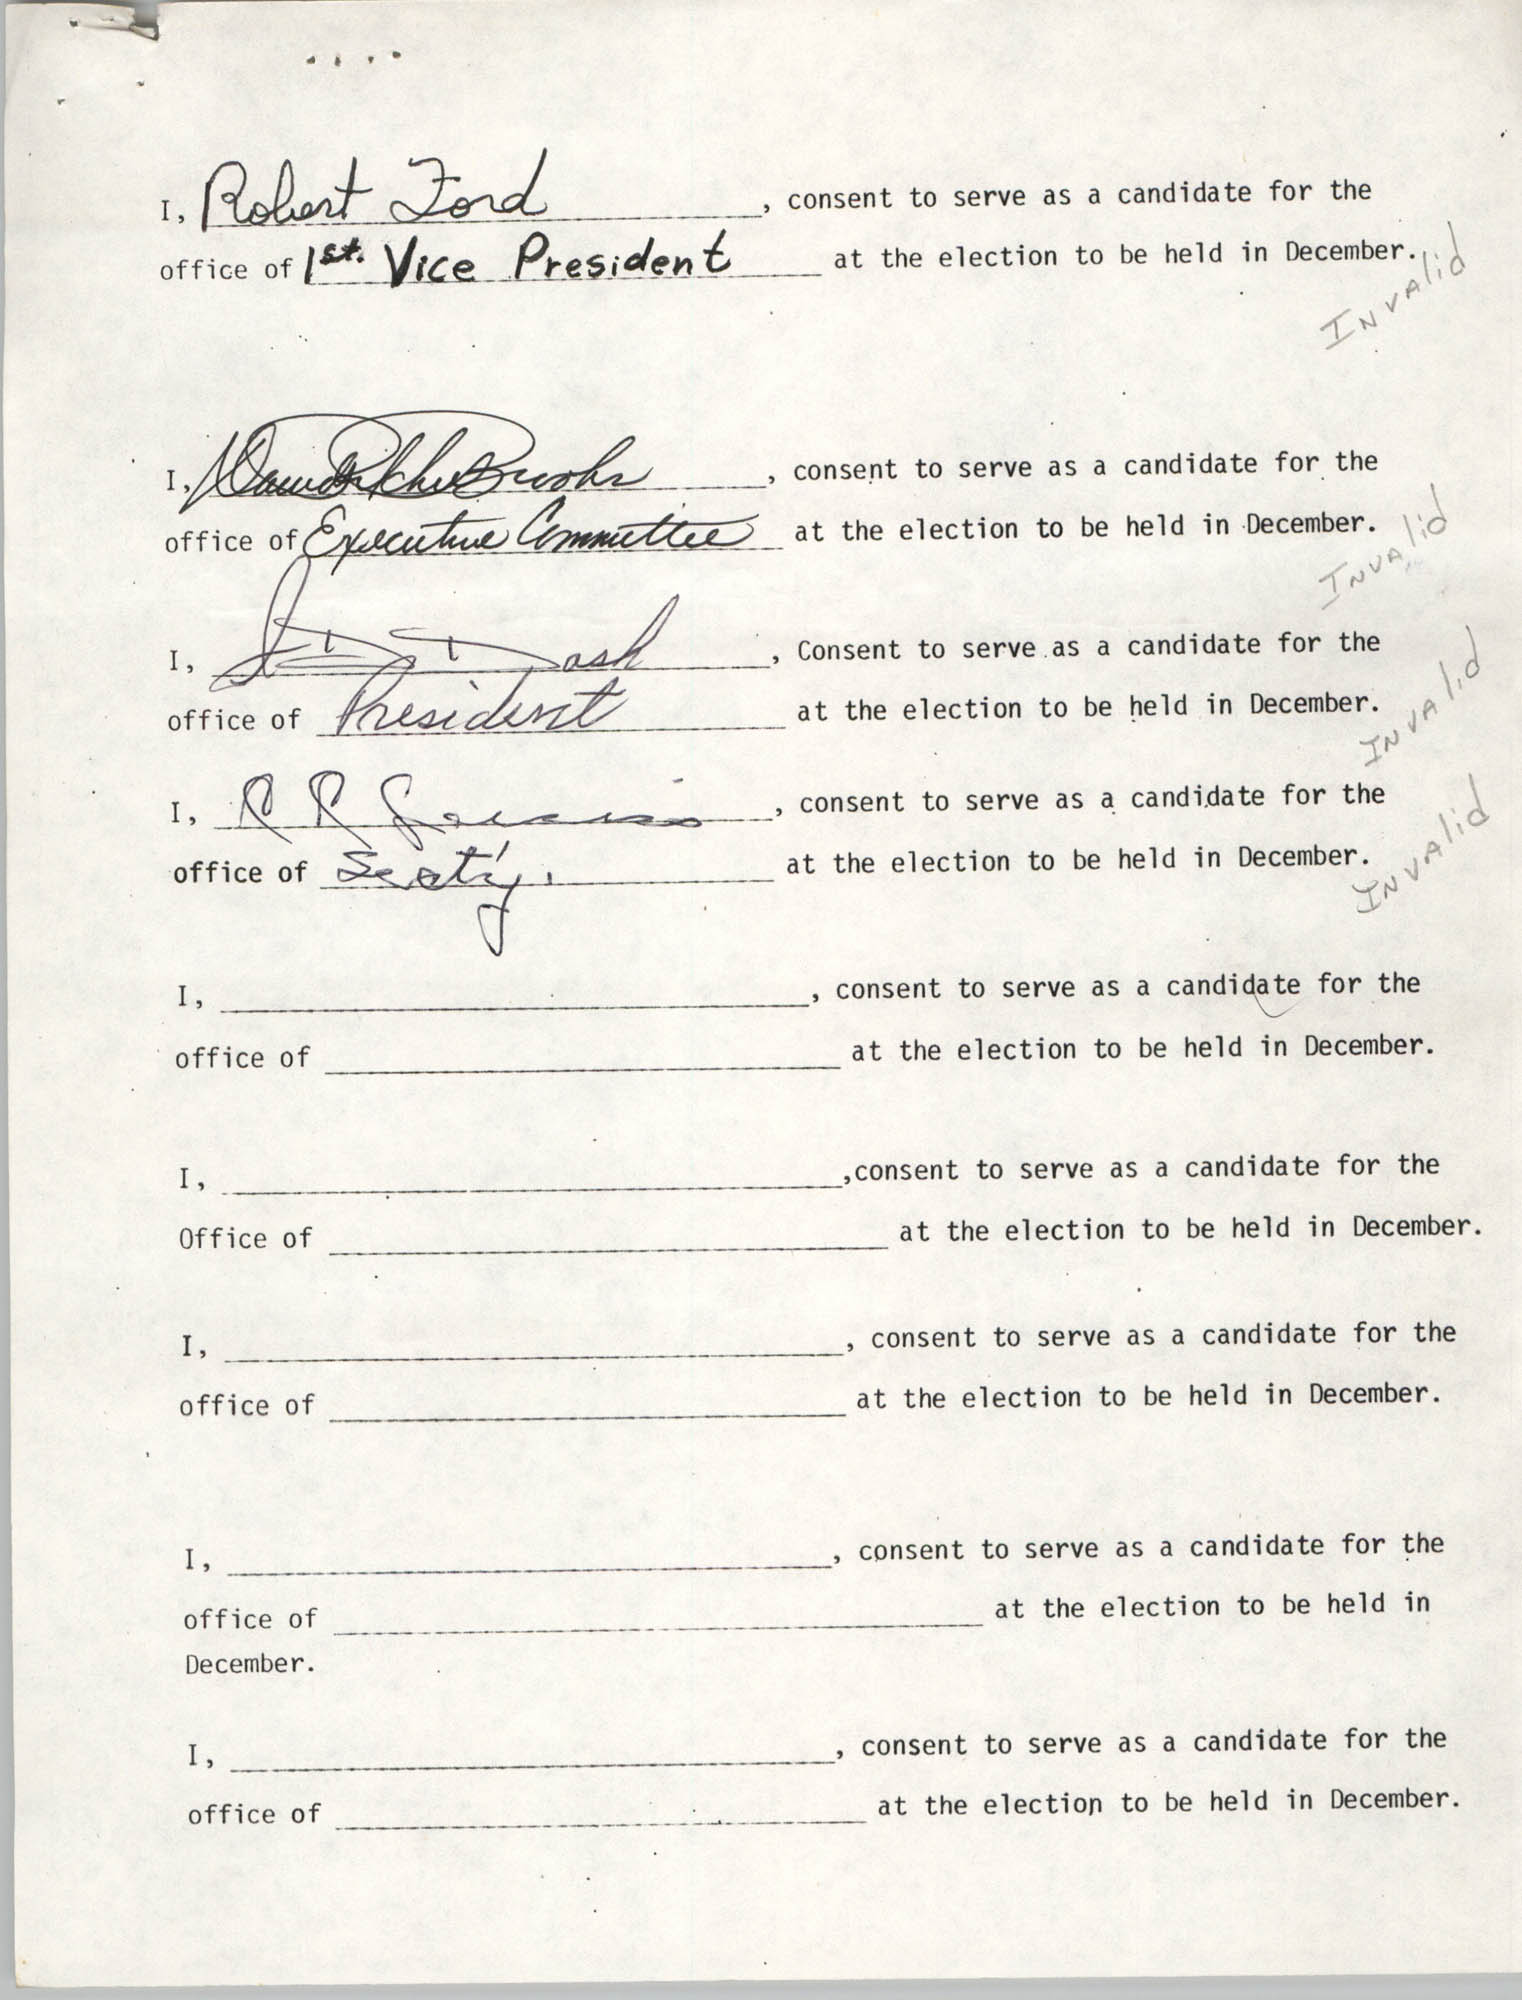 Charleston Branch of the NAACP Election Materials, Consent Form 2